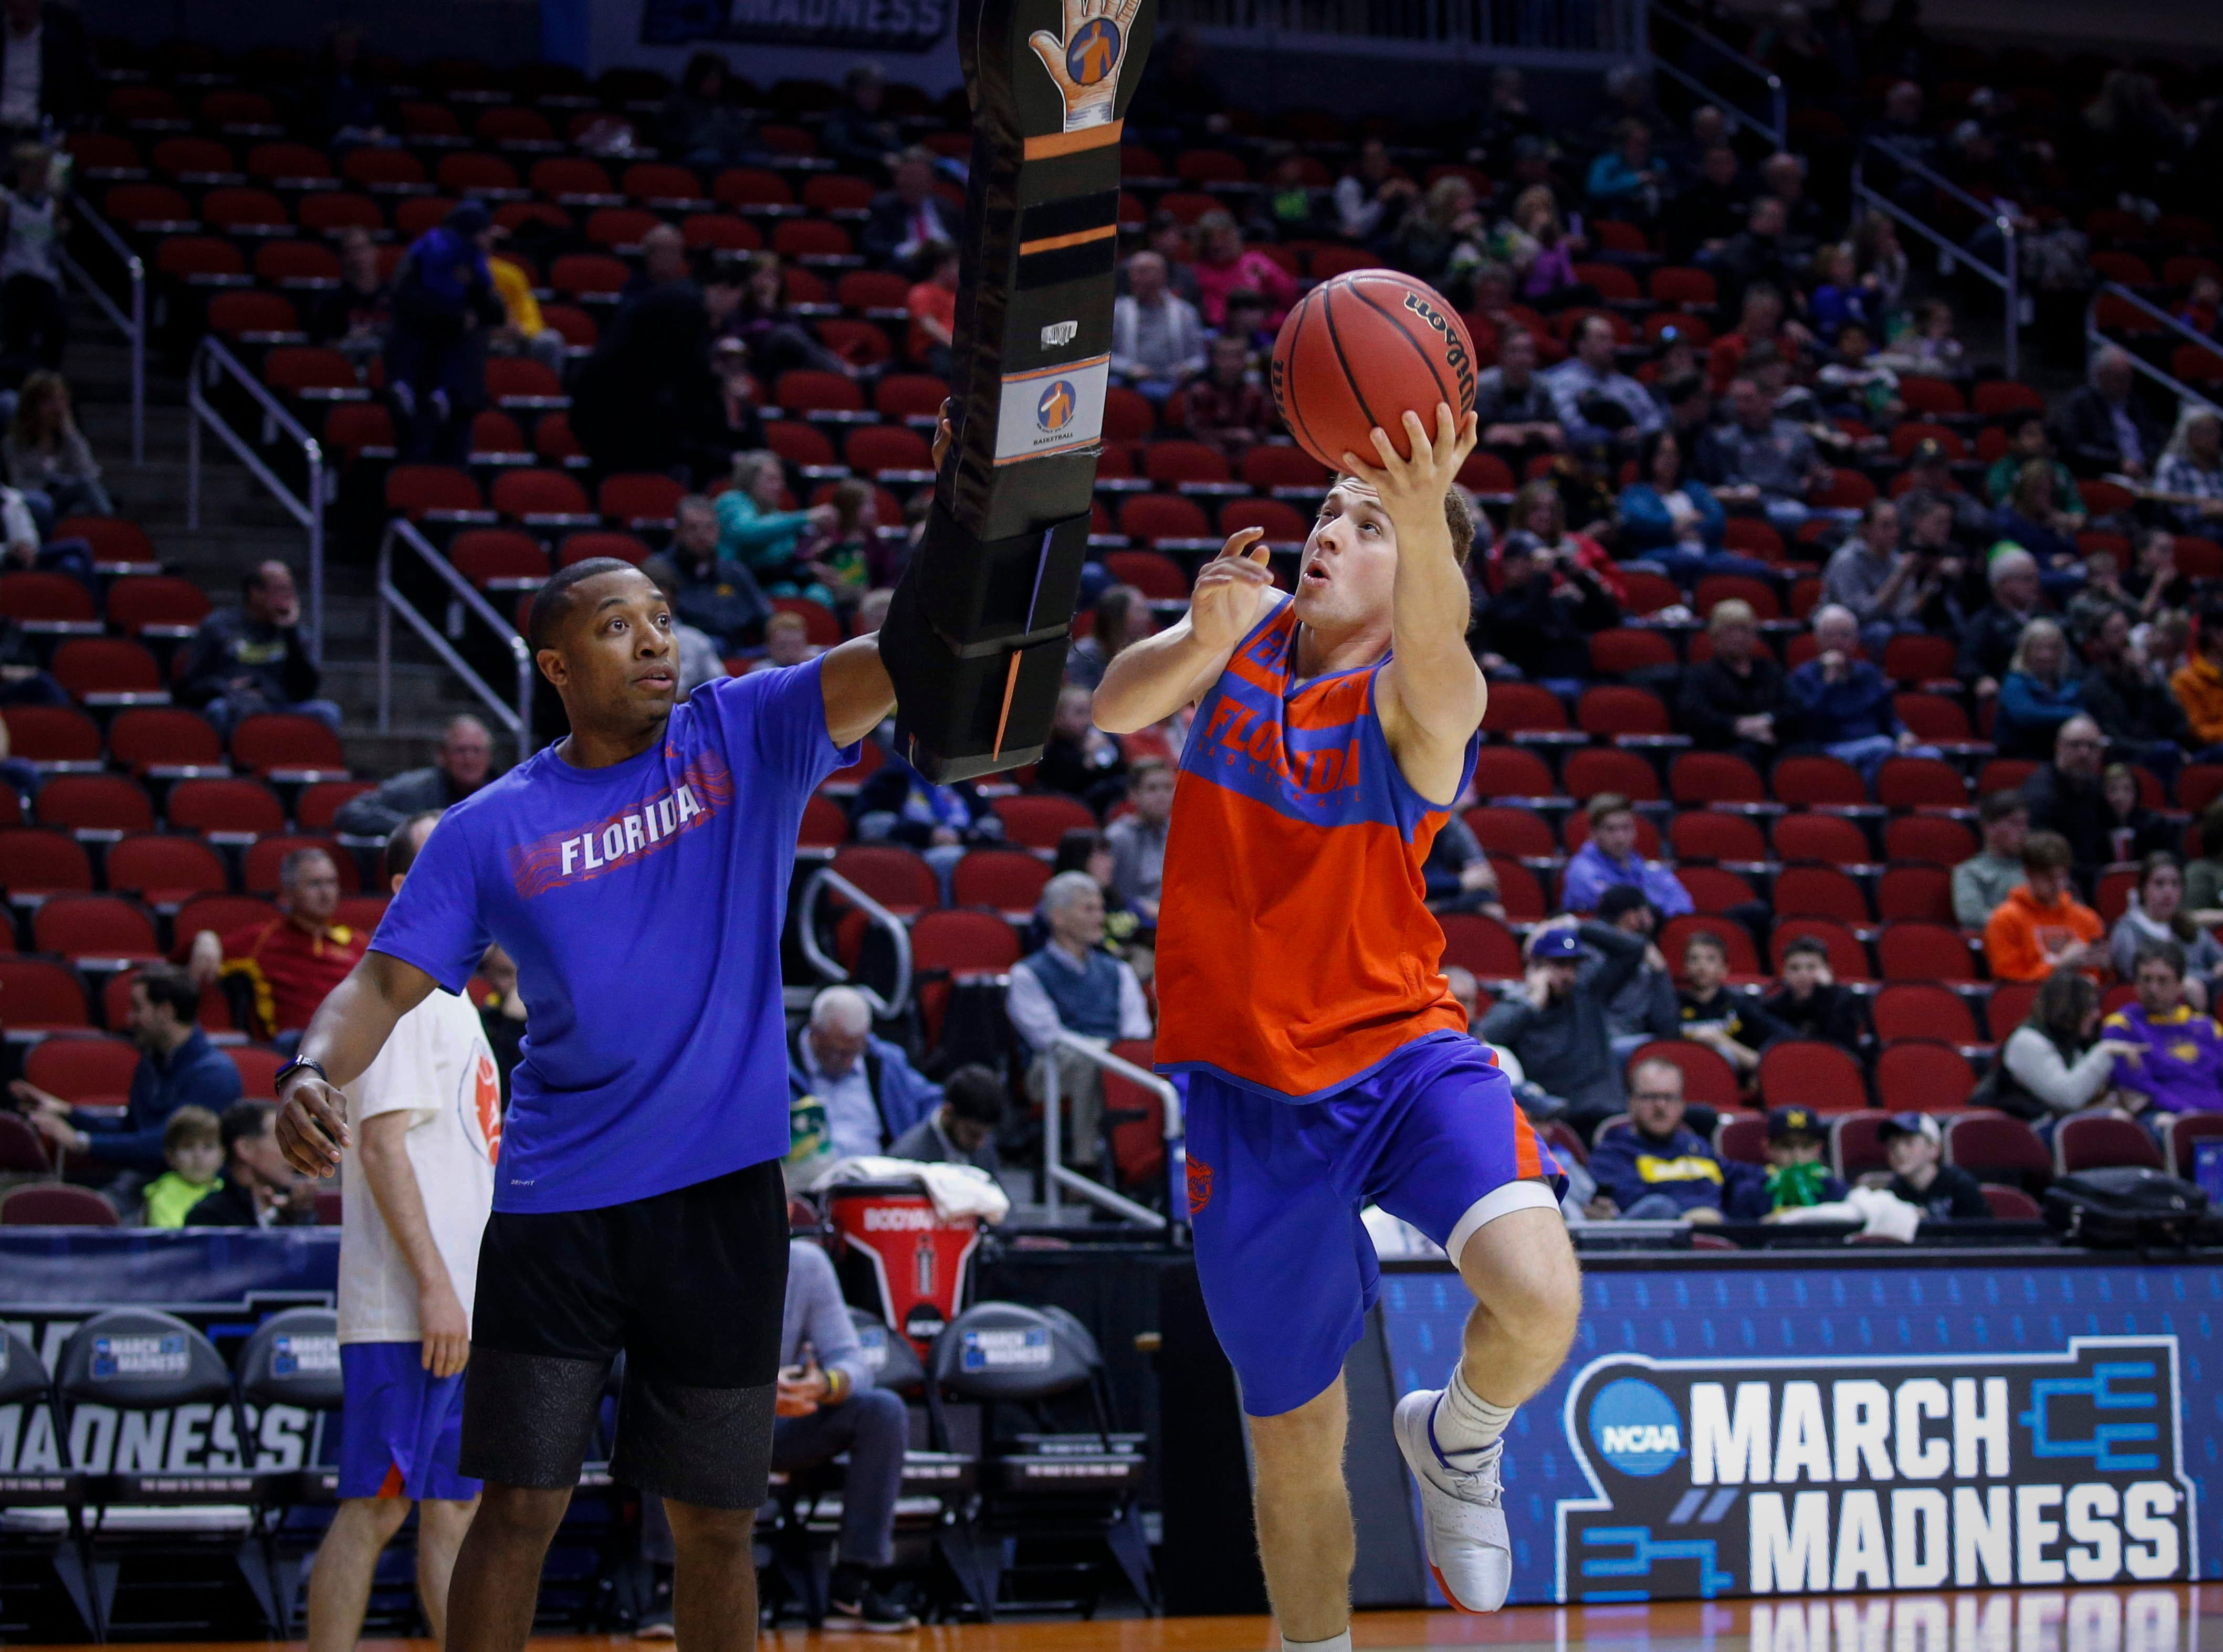 Florida sophomore Andrew Fava moves to the hoop during open practice on Wednesday, March 20, 2019, at Wells Fargo Arena in Des Moines, Iowa.